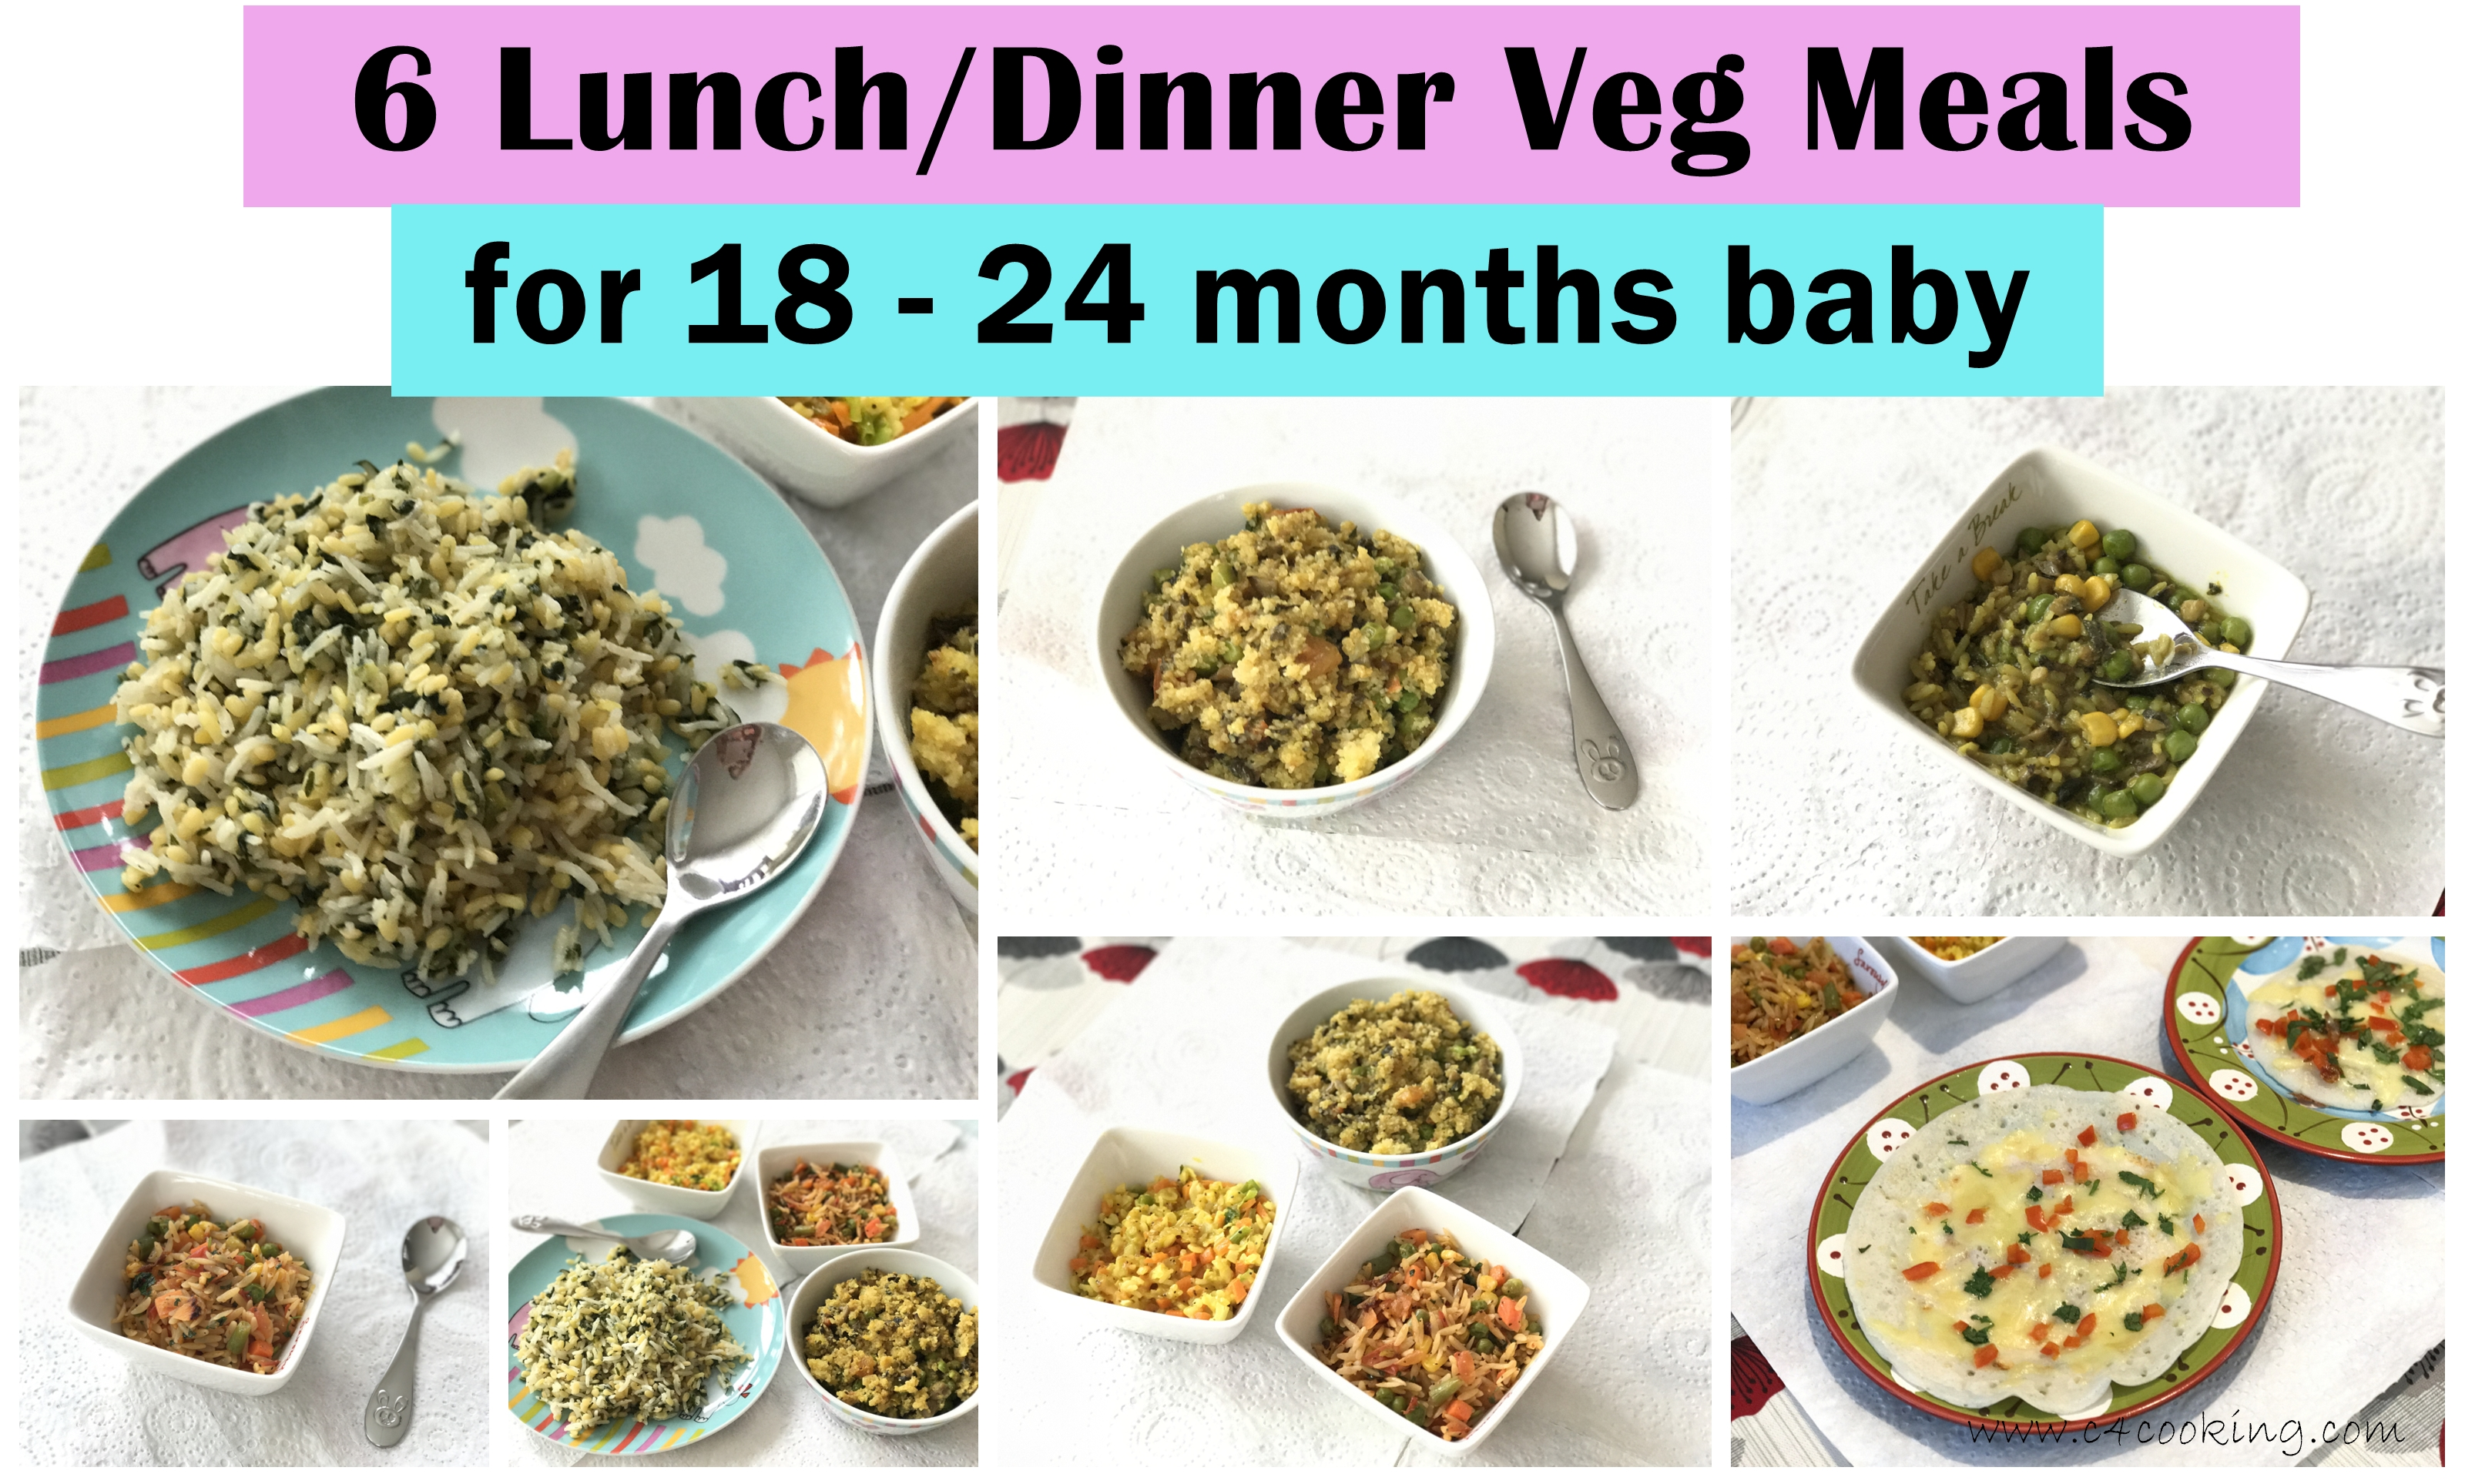 Veg Lunch/Dinner meals for 18 - 24 months baby